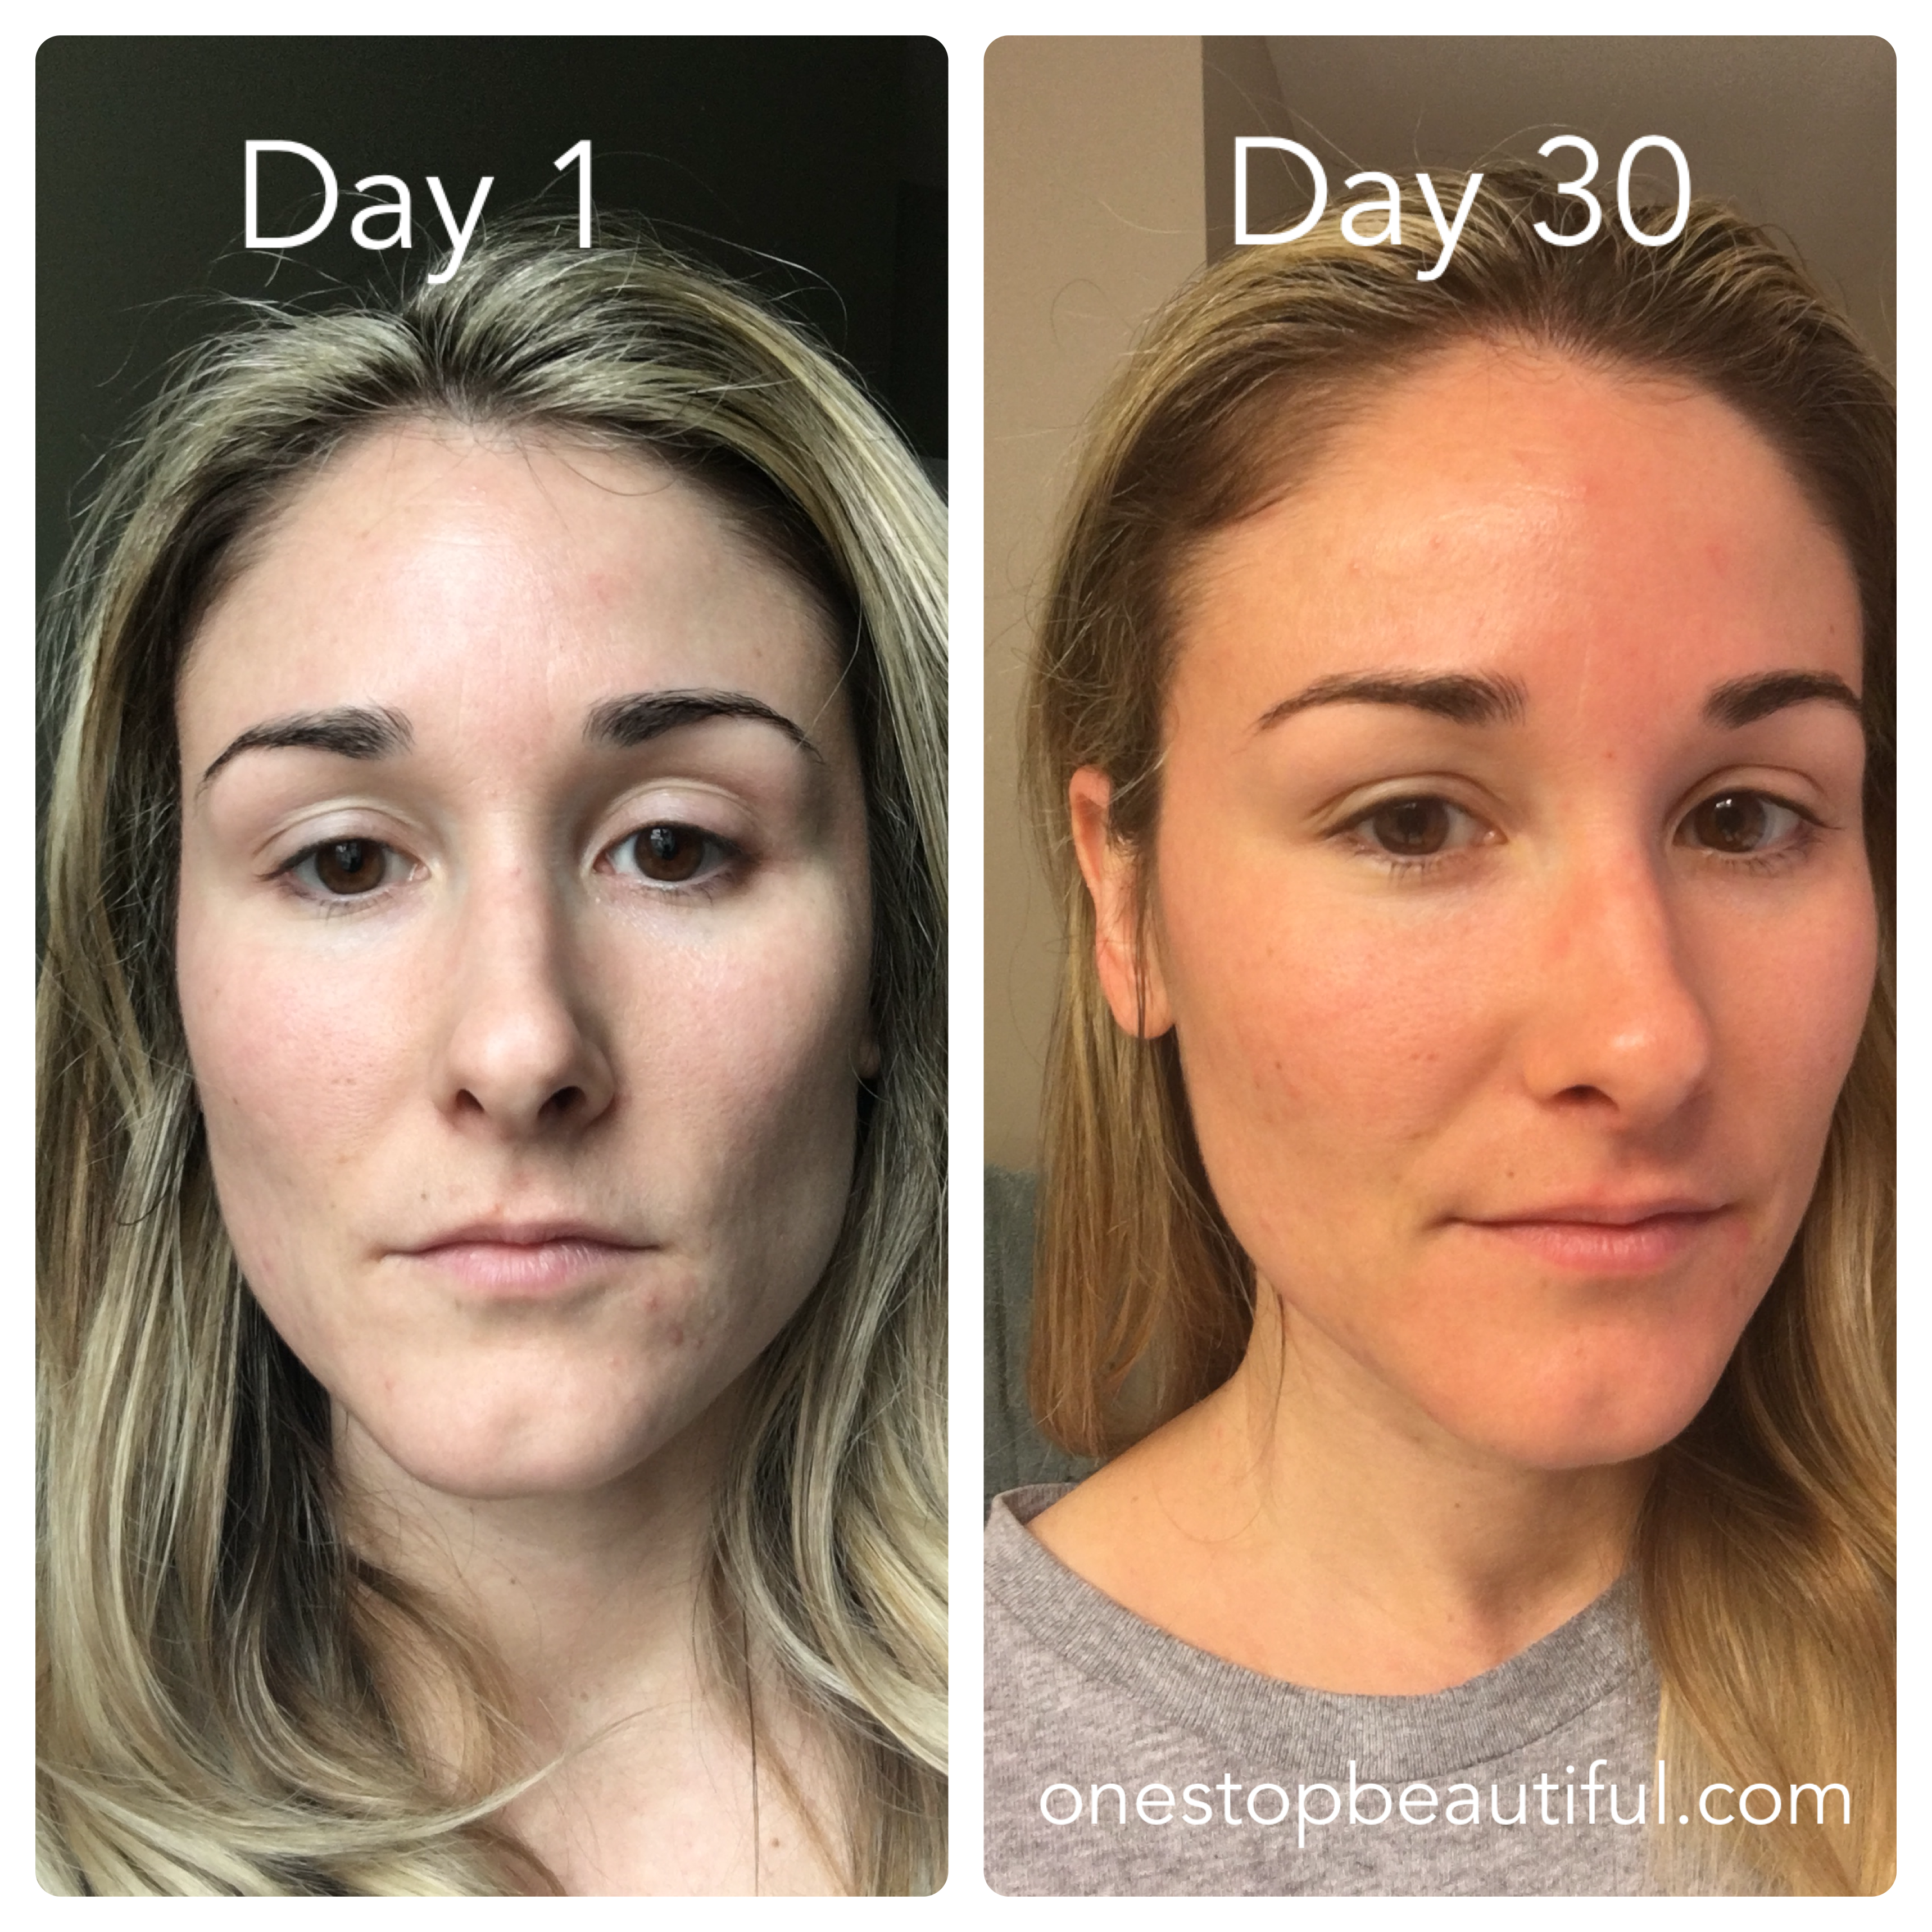 30 Day Results From My Skin Care Routine With Limelight By Alcone I Am Super Impressed This Has Helped My Acne S Skin Care Routine Skin Therapist Acne Scaring